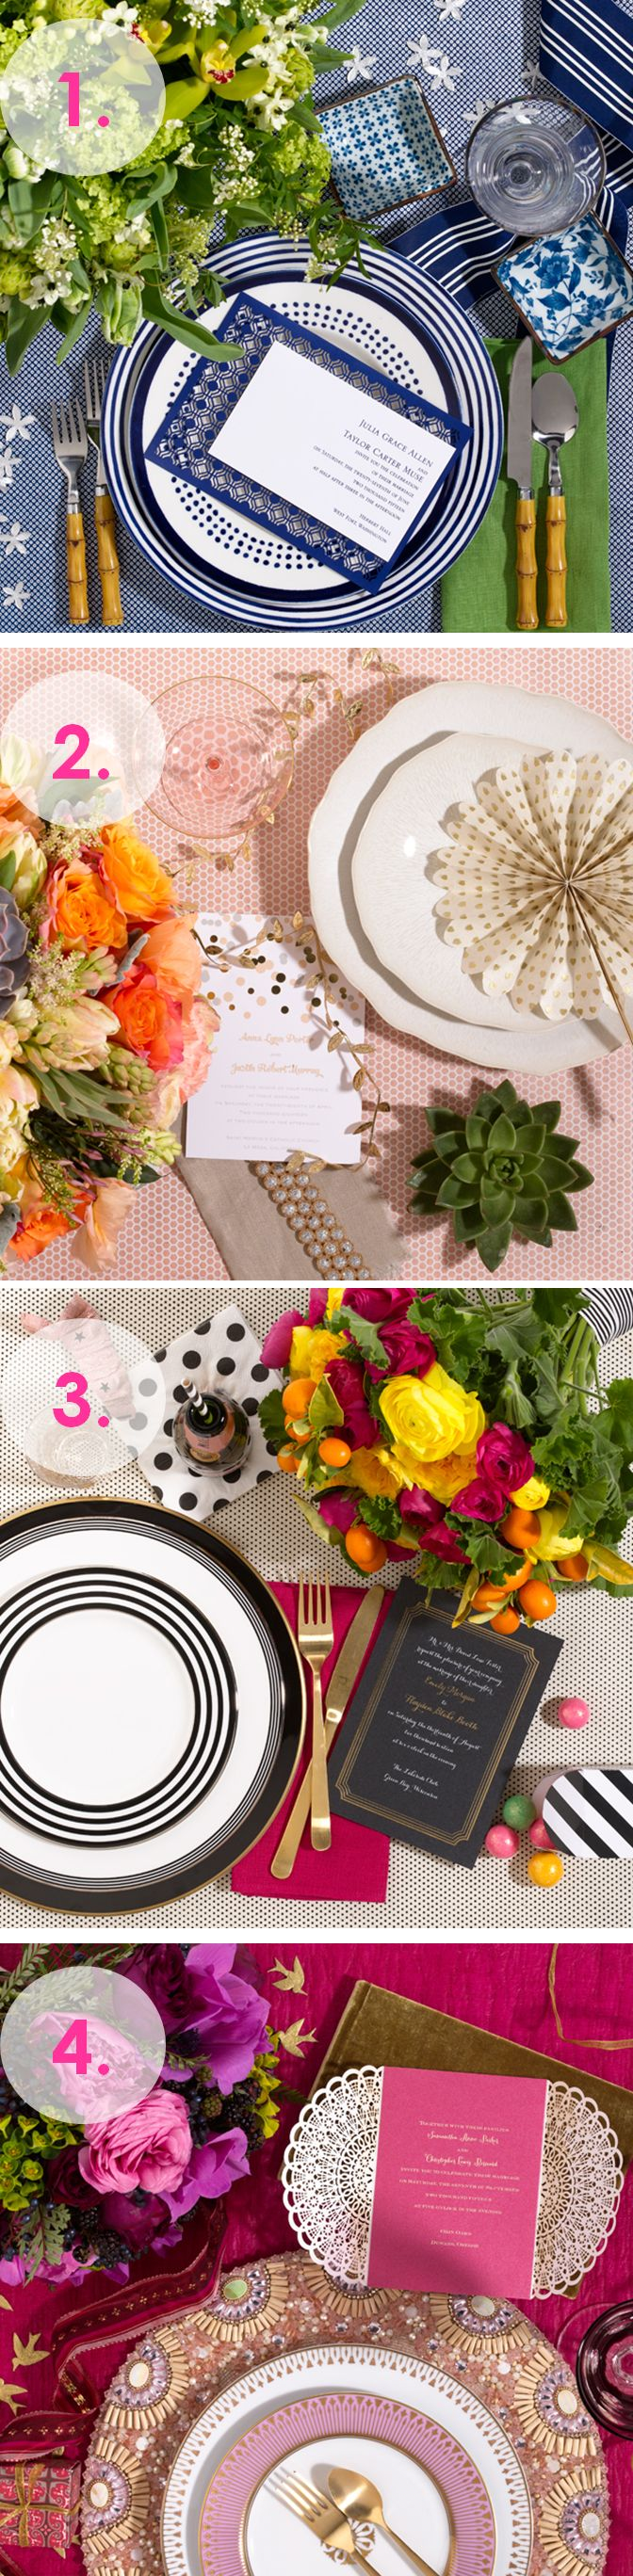 Help plan a MILLION dollar wedding! Cast your vote for your favorite décor concept + color palette! http://www.theperfectpalette.com/2014/04/help-plan-million-dollar-wedding-vote.html  And @BRIDES will bring it to life for one lucky couple!